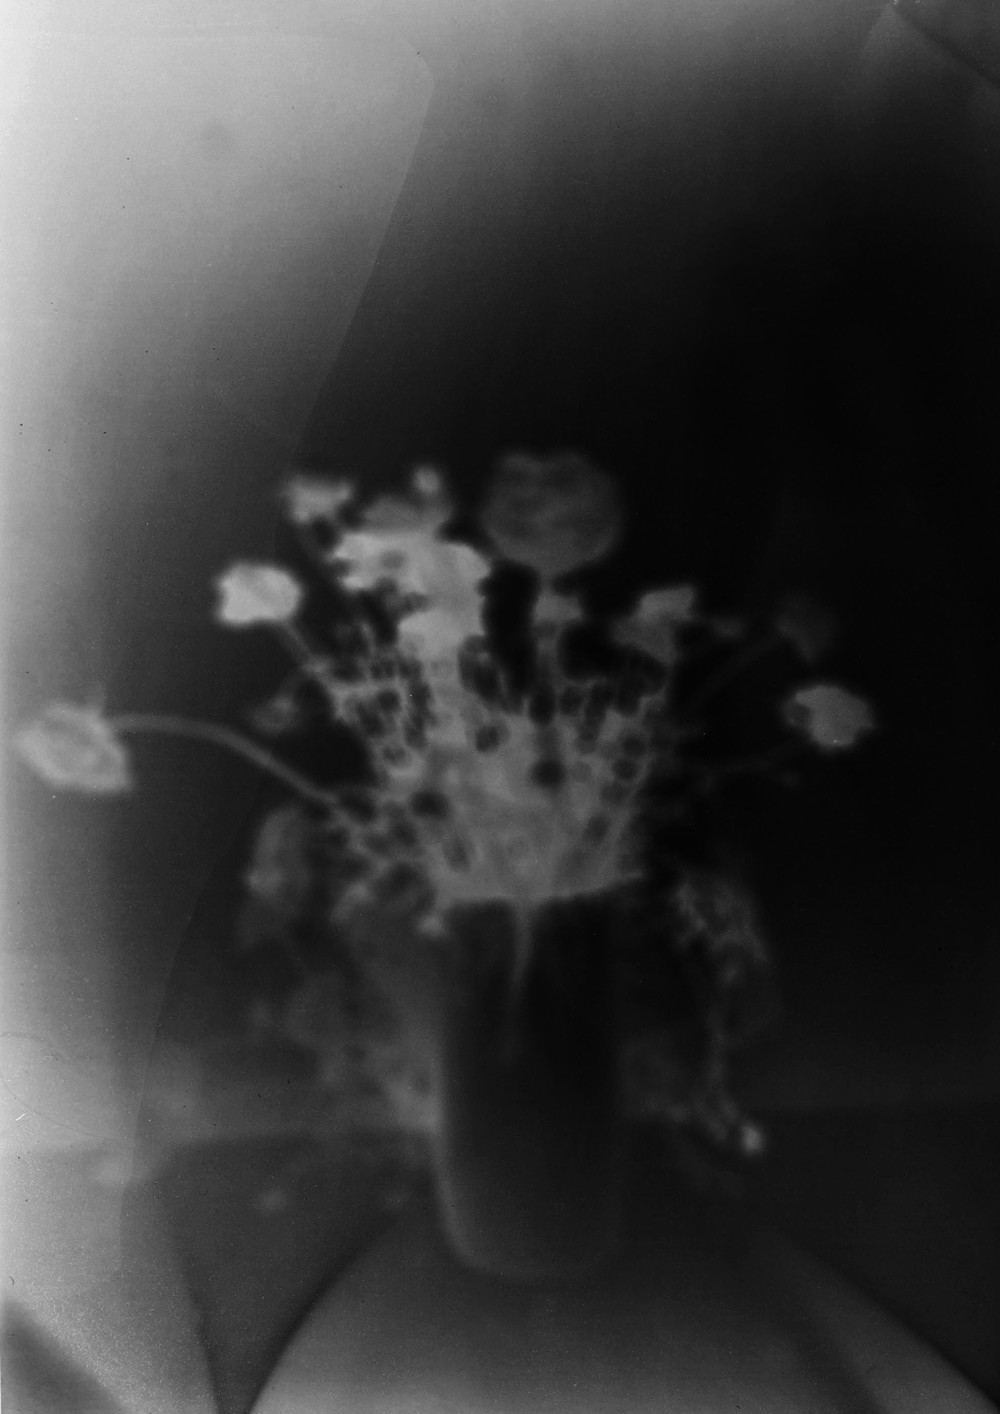 'Blumen II', 2011/15, Pinhole photograph, laser-print on 180gsm cartridge paper, 12 x 18 cm